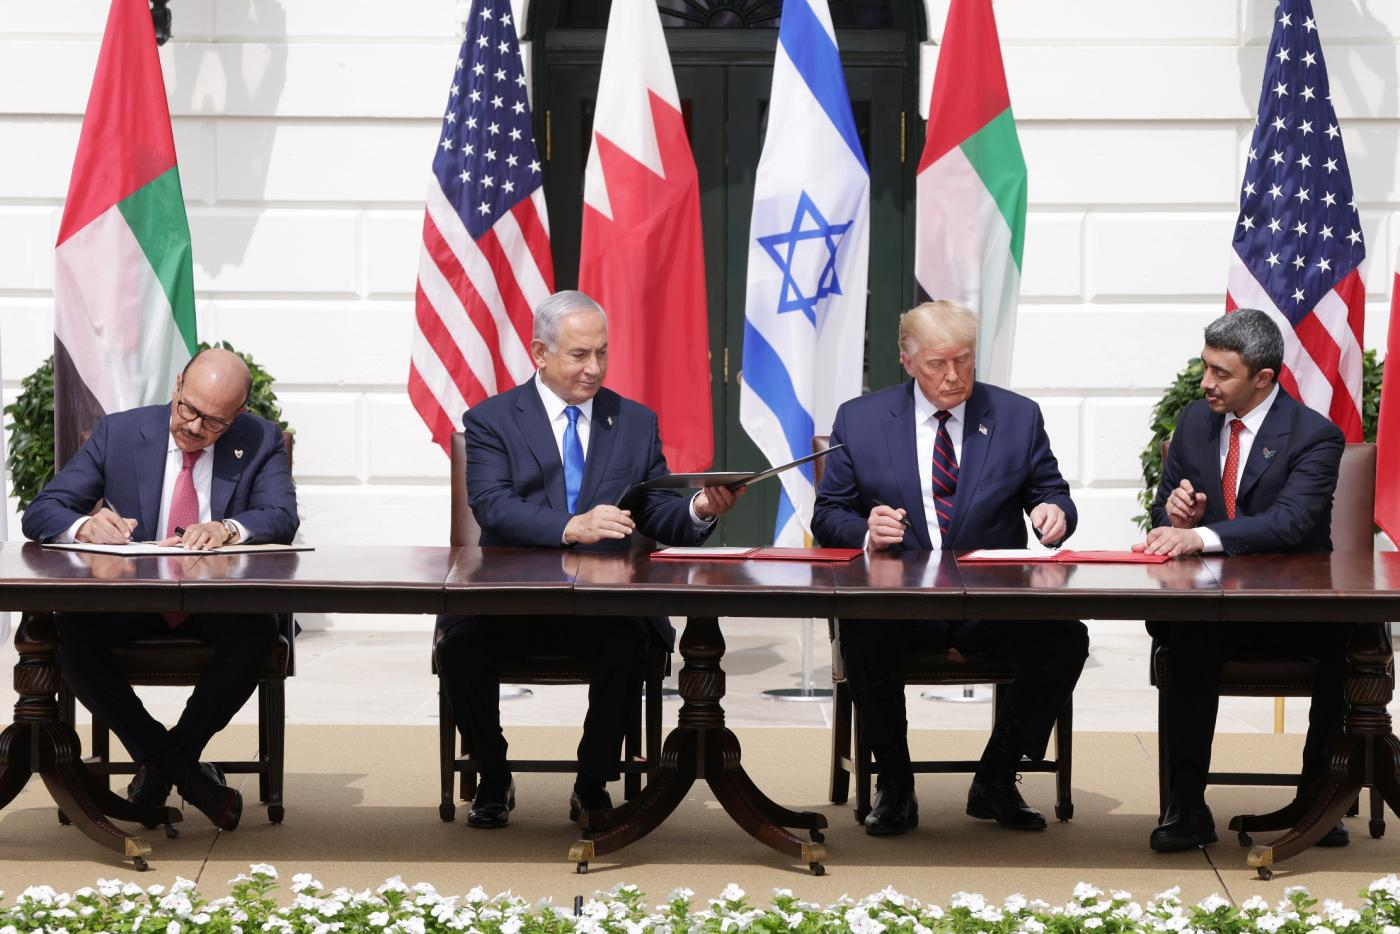 Israel Uae And Bahrain Sign Deal In Washington To Make